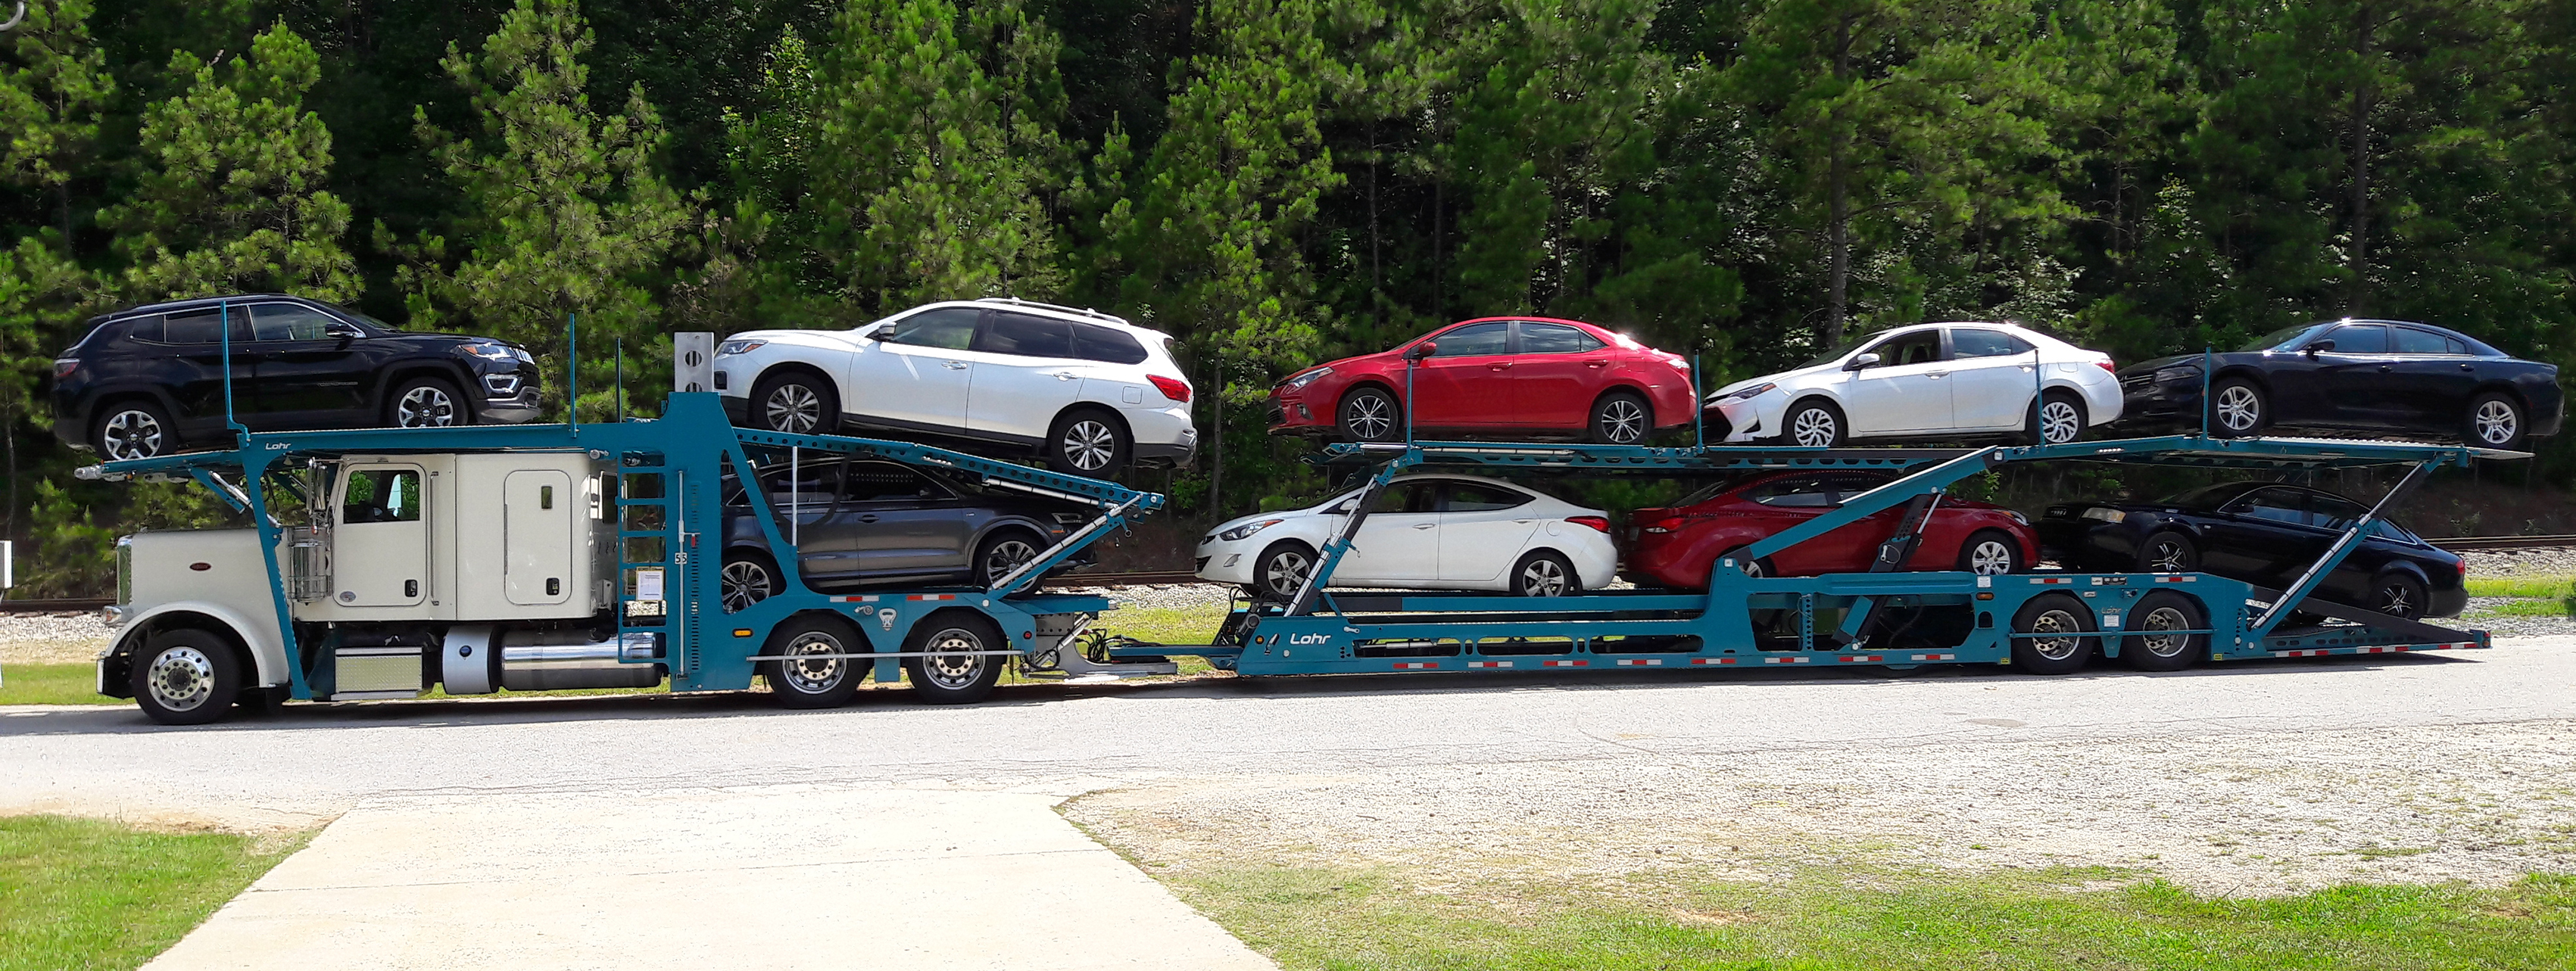 Lohr car-carriers from the EVO range, vehicle for the North American market, loaded with 9 sedans